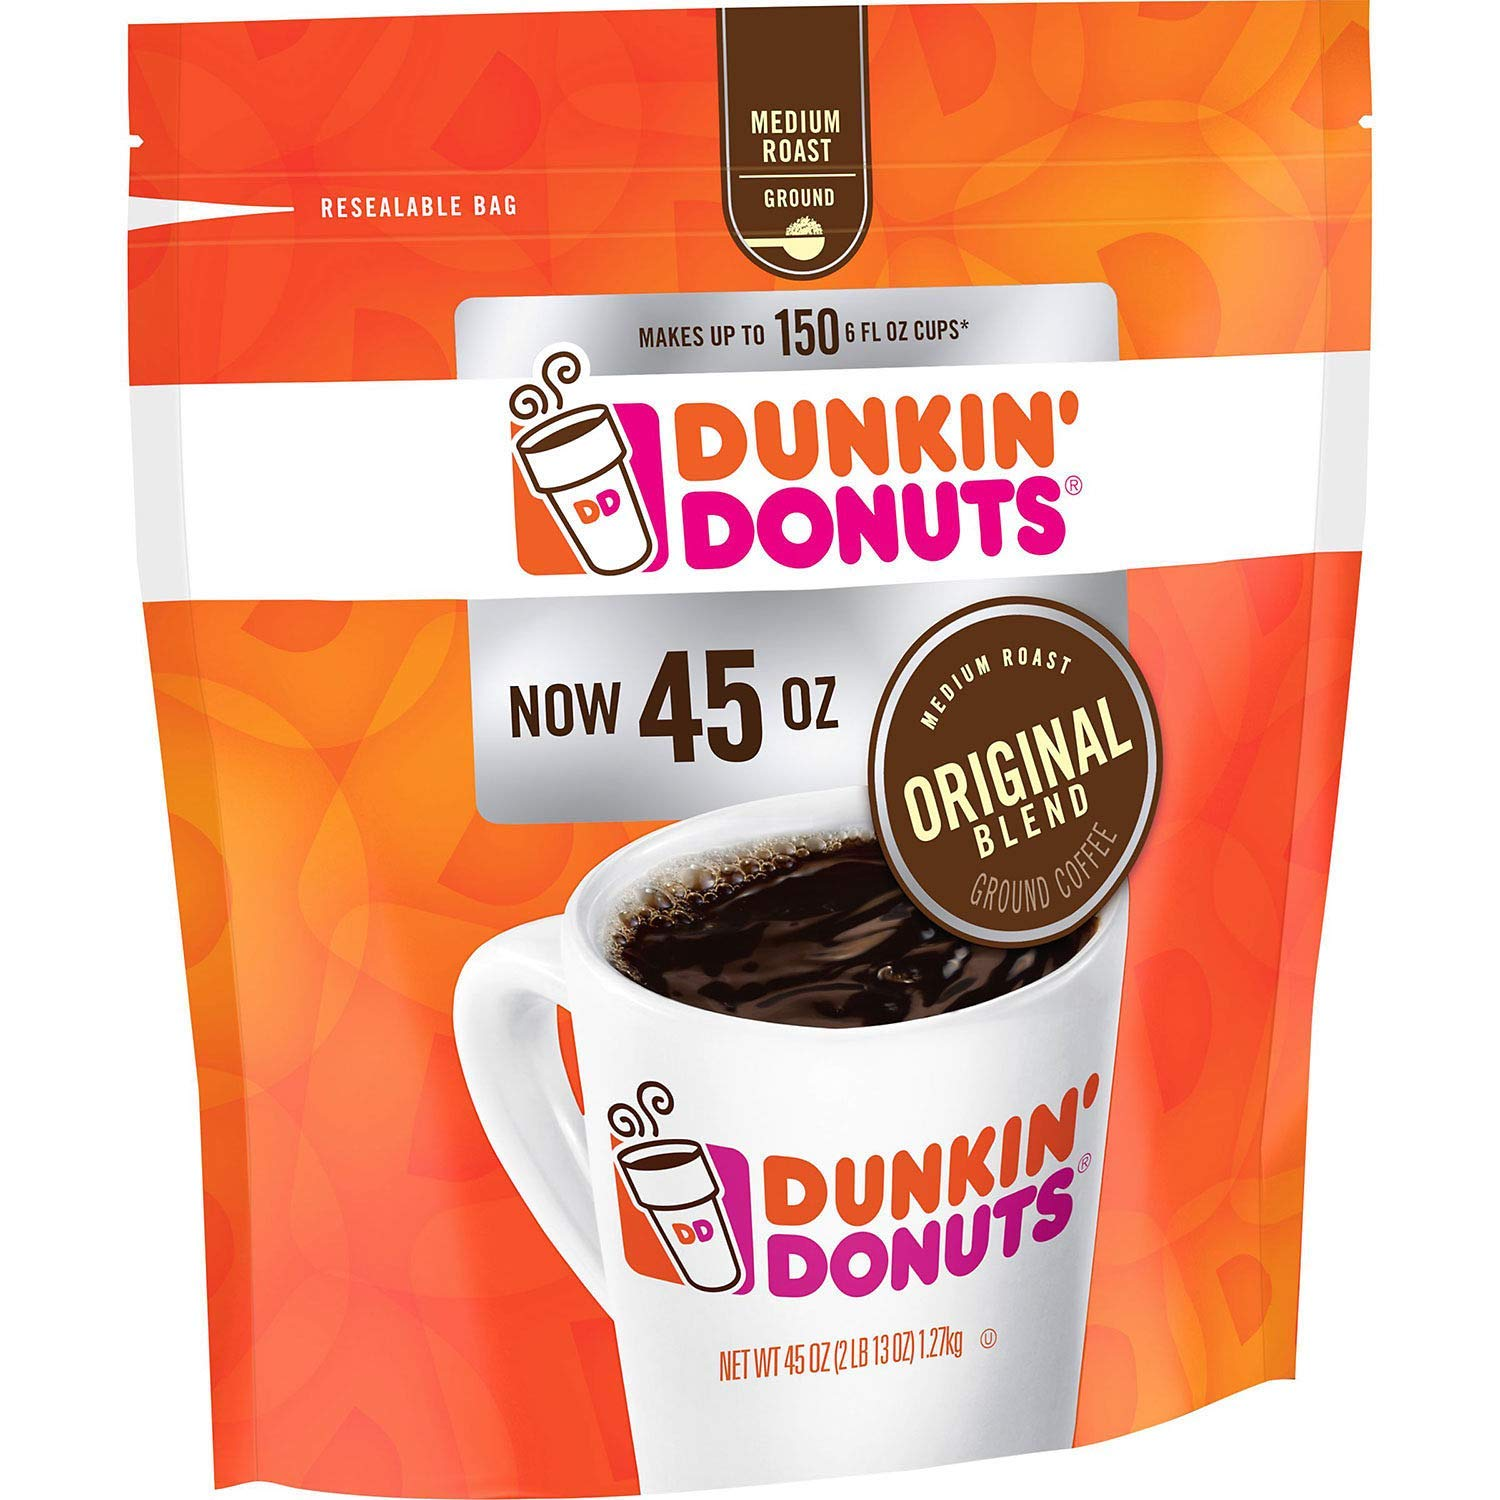 70aaf00acab Amazon.com : Dunkin' Donuts Original Blend Ground Coffee, Medium Roast (90  oz.) : Grocery & Gourmet Food